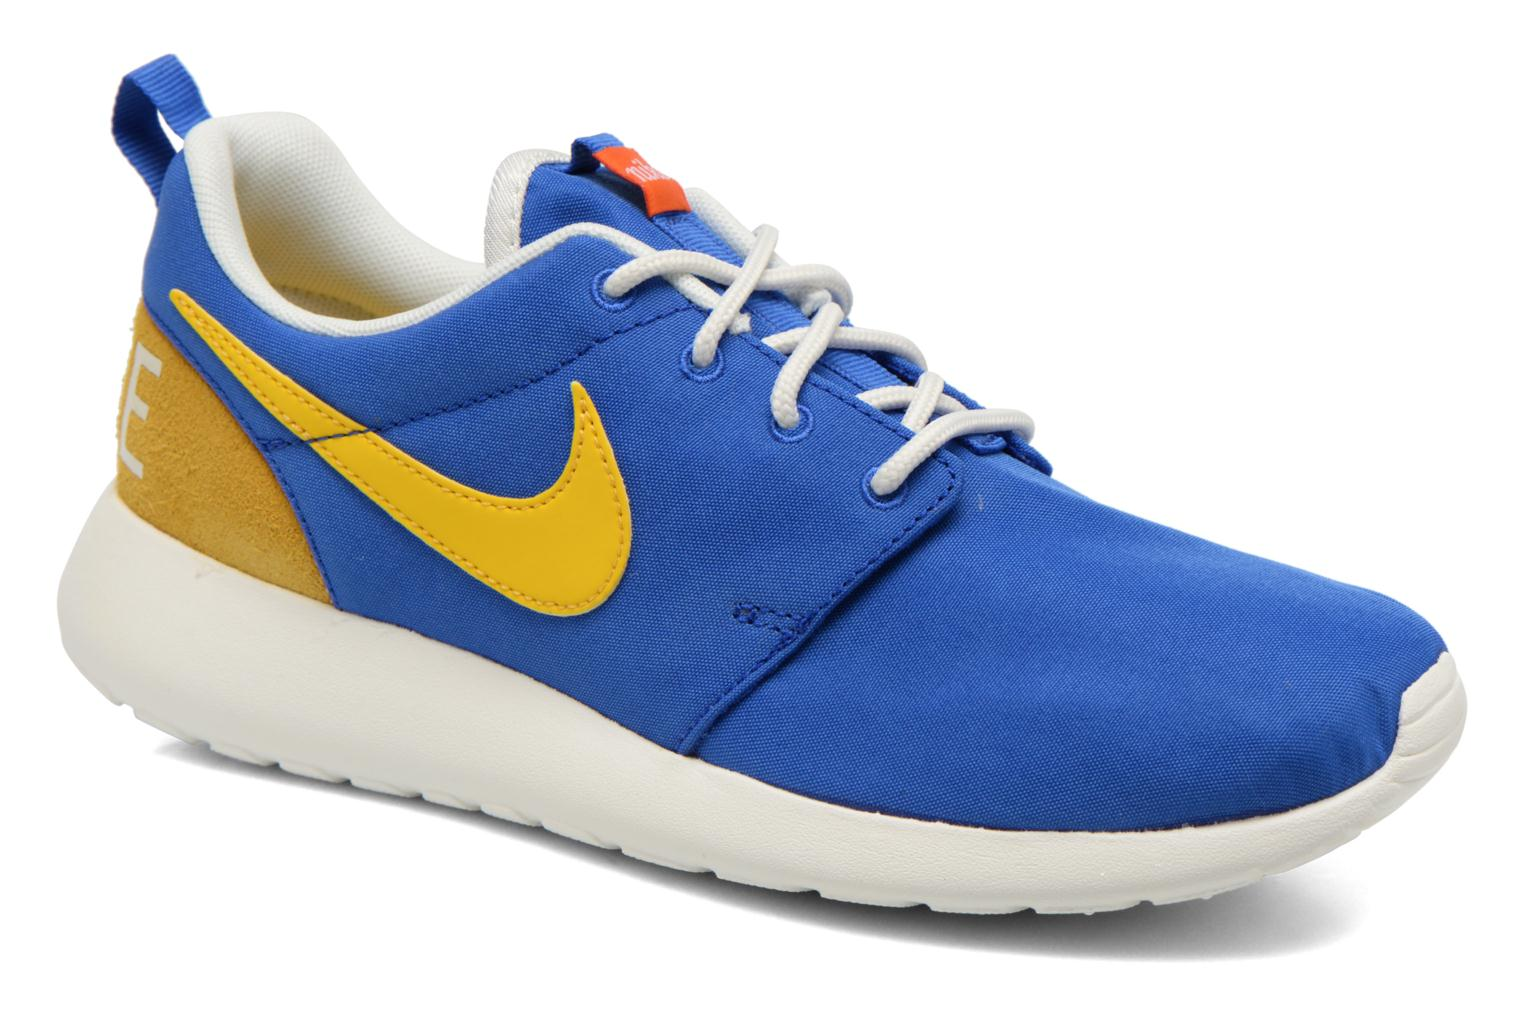 Wmns Nike Roshe One Retro Racer Blue/Vrsty Maize-Sl-Blk